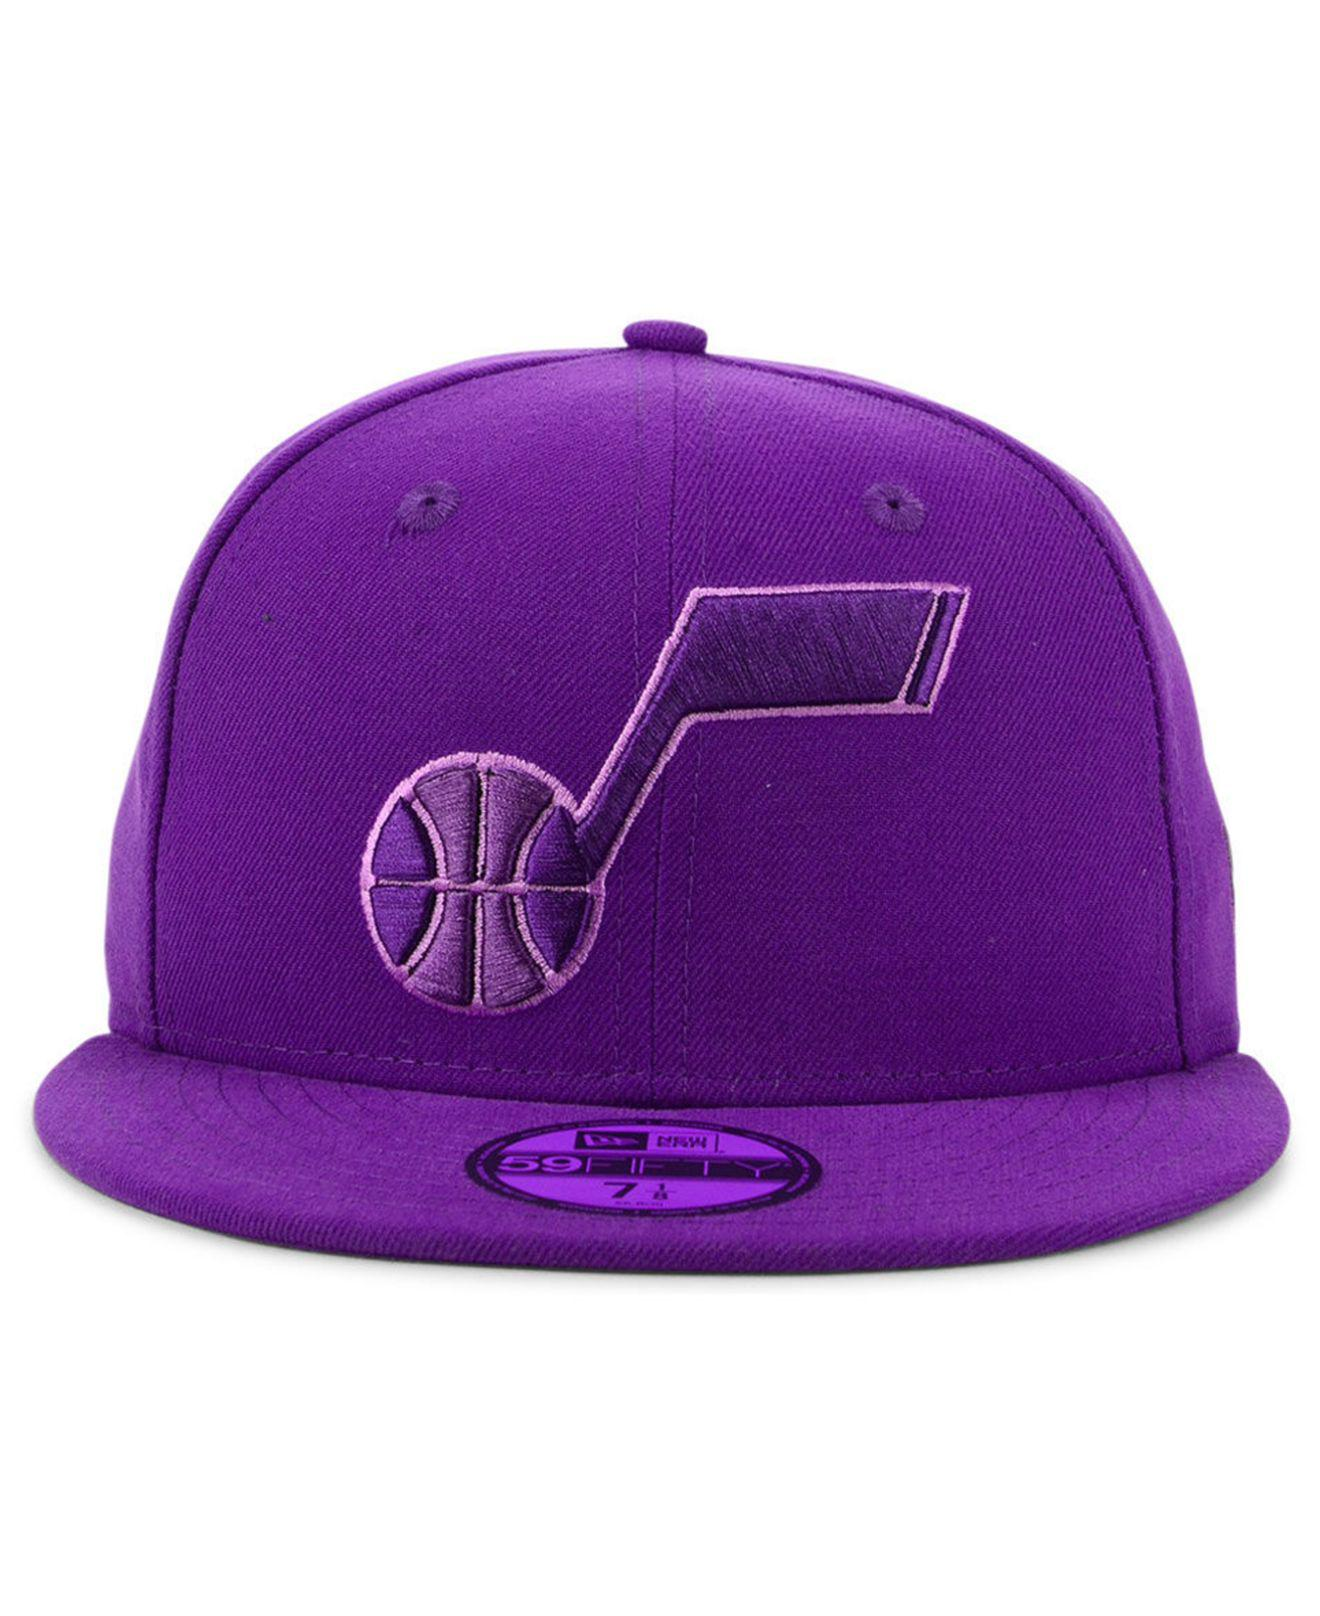 size 40 2db59 d269a Lyst - KTZ Utah Jazz Color Prism Pack 59fifty Fitted Cap in Purple for Men